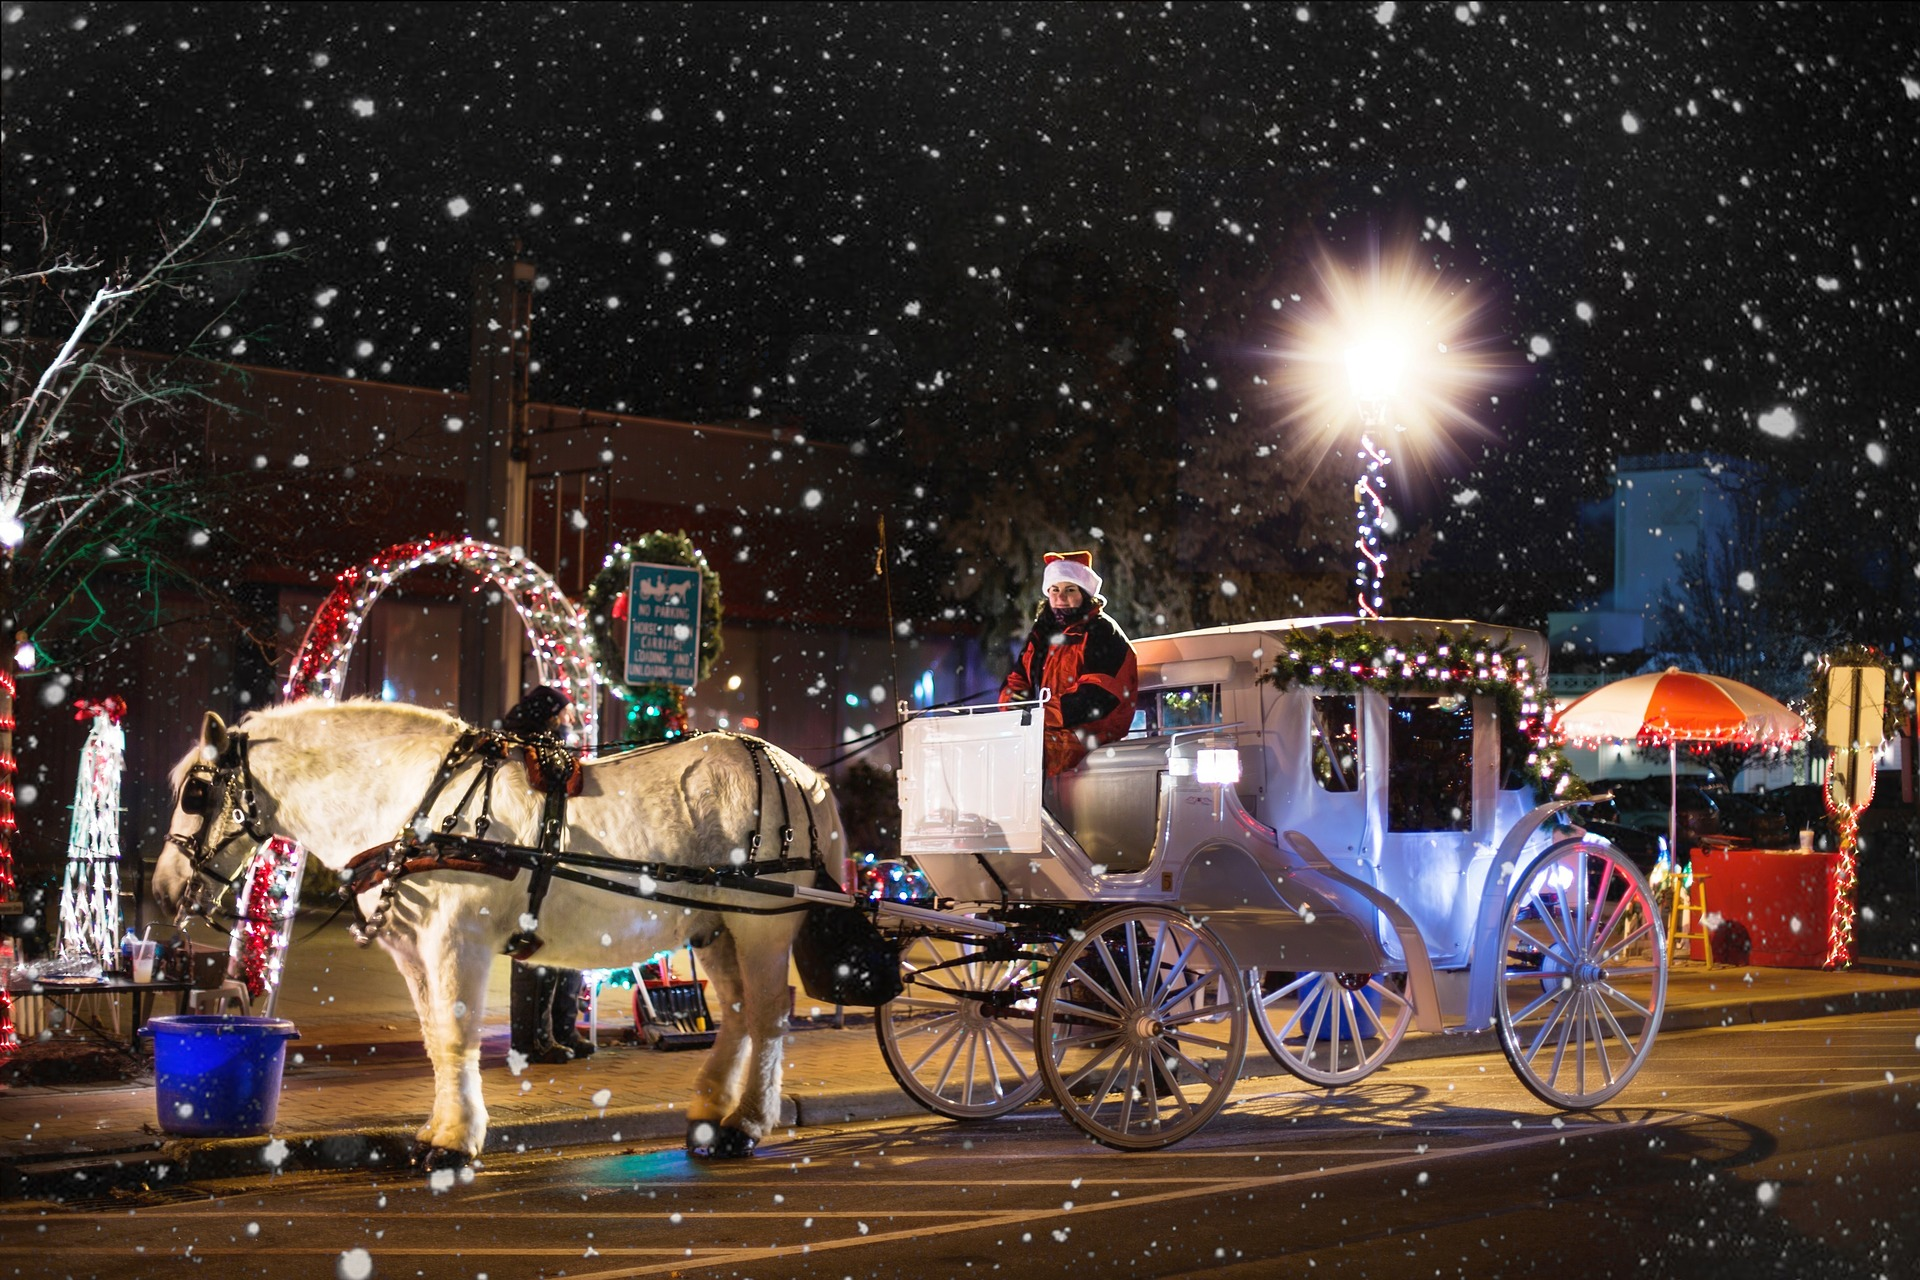 woman riding holiday carriage in the snow